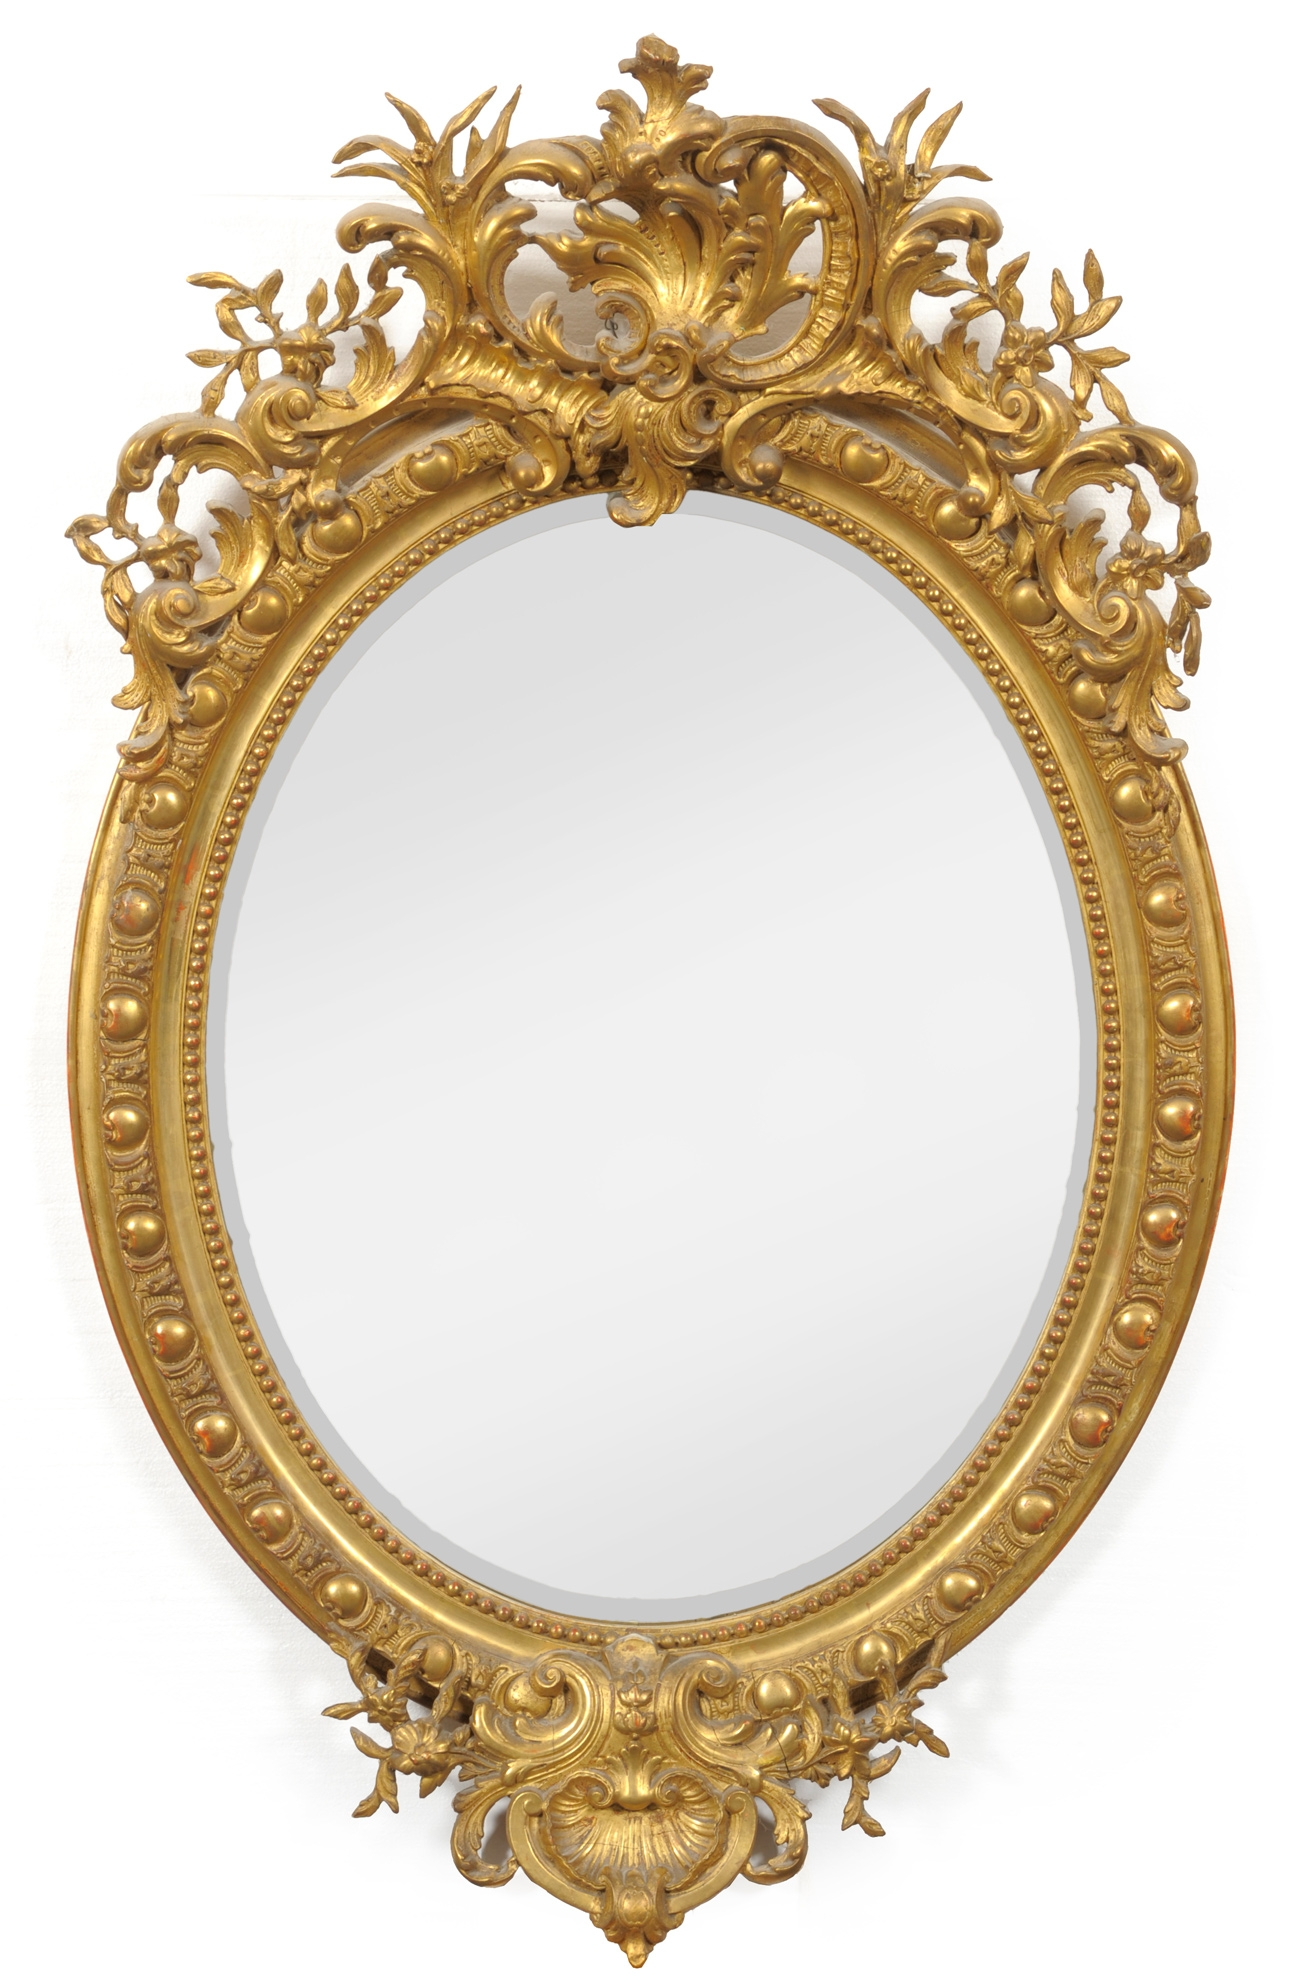 Tennants Auctioneers An Early Victorian Gilt And Gesso Oval Wall Intended For Victorian Mirrors Antique (Image 14 of 15)